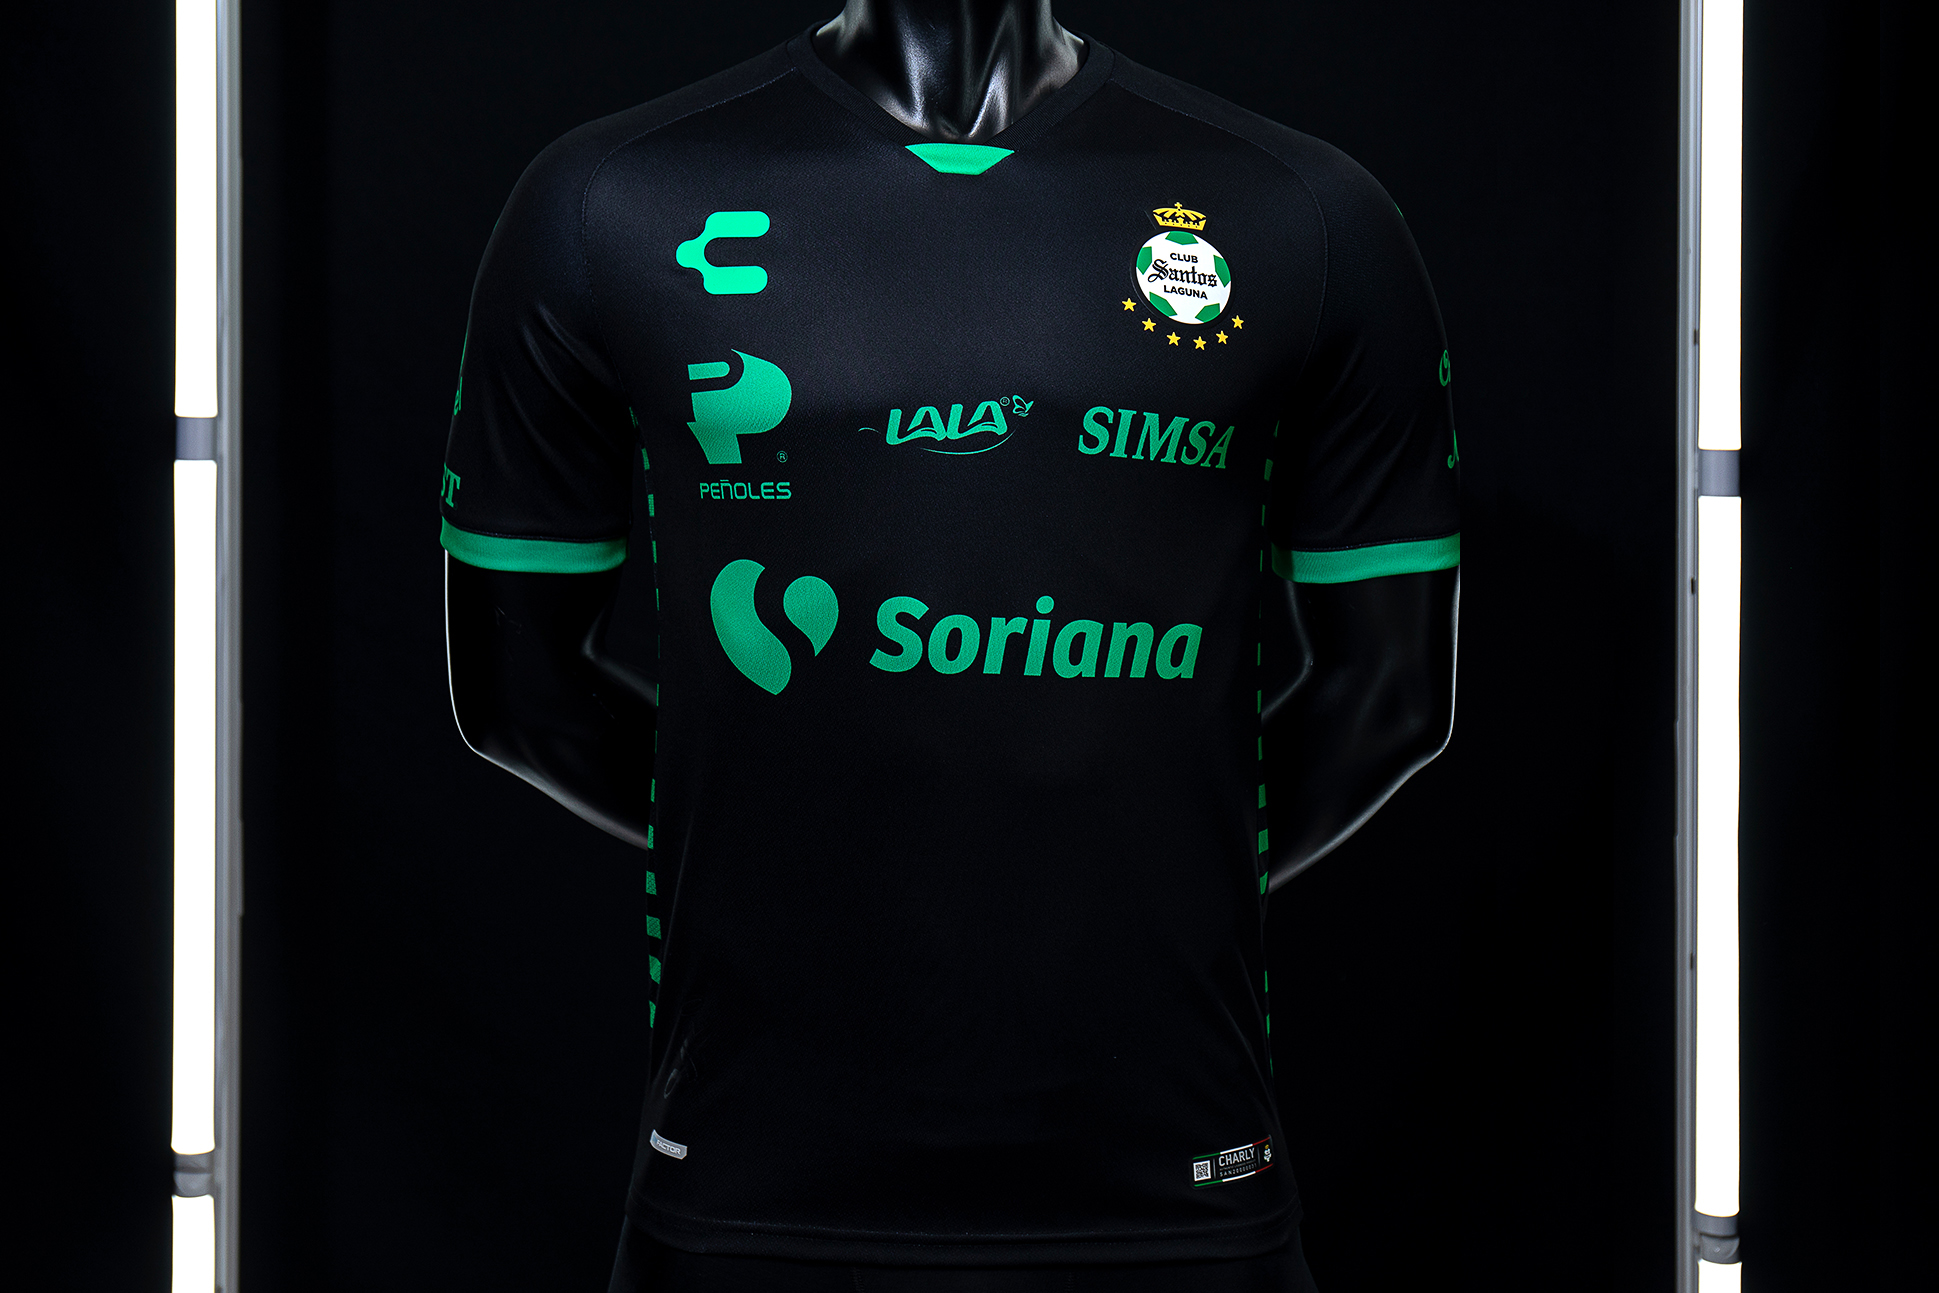 Club Santos and Charly unveil 2020/2021 jersey on sale now